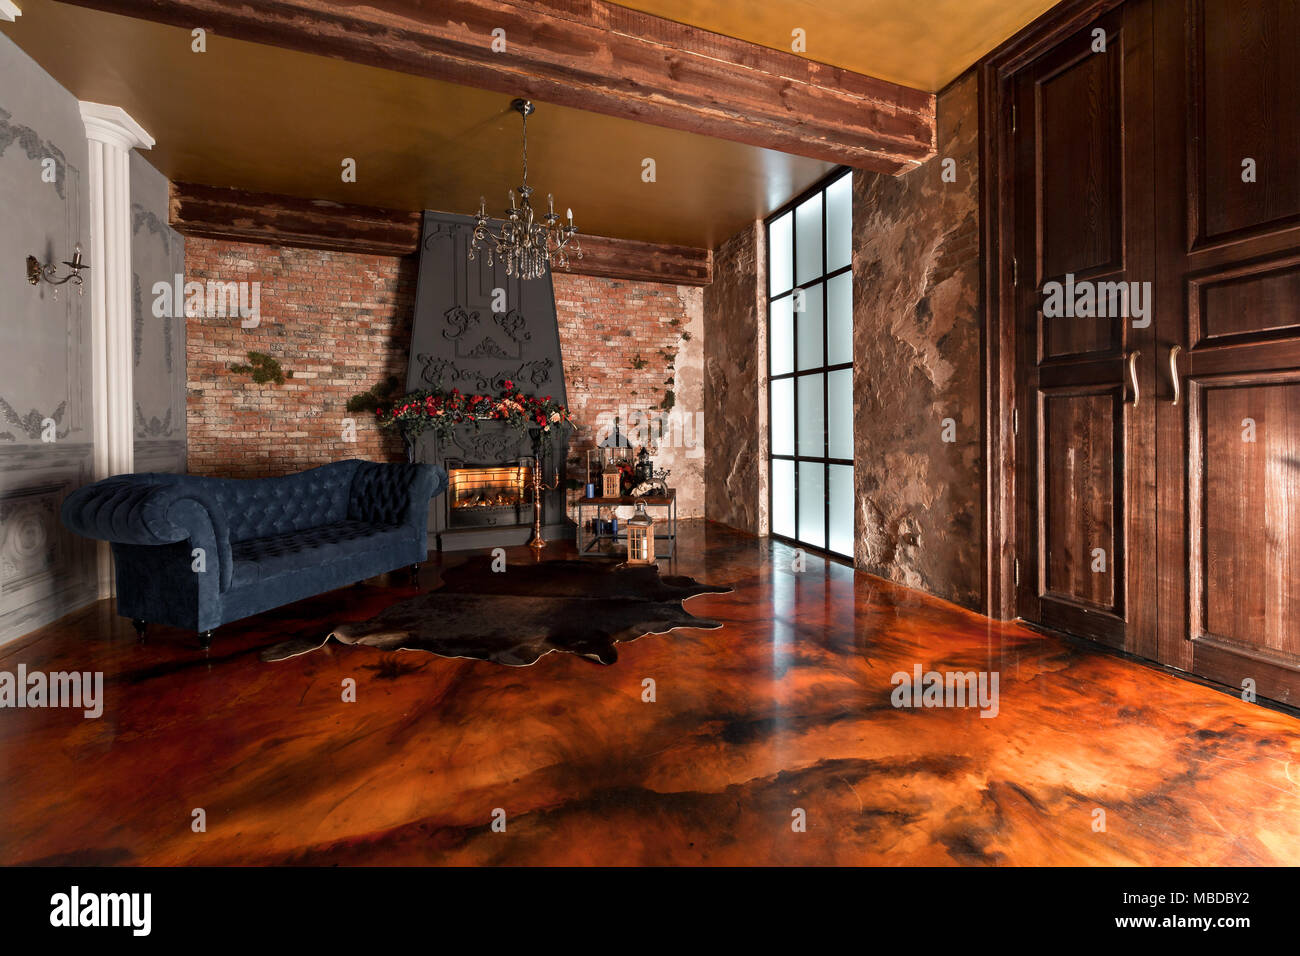 Interior with fireplace candles skin of cows brick wall large window and a living room coffee table and dark blue sofa in modern design. & loft style. Interior with fireplace candles skin of cows brick ...